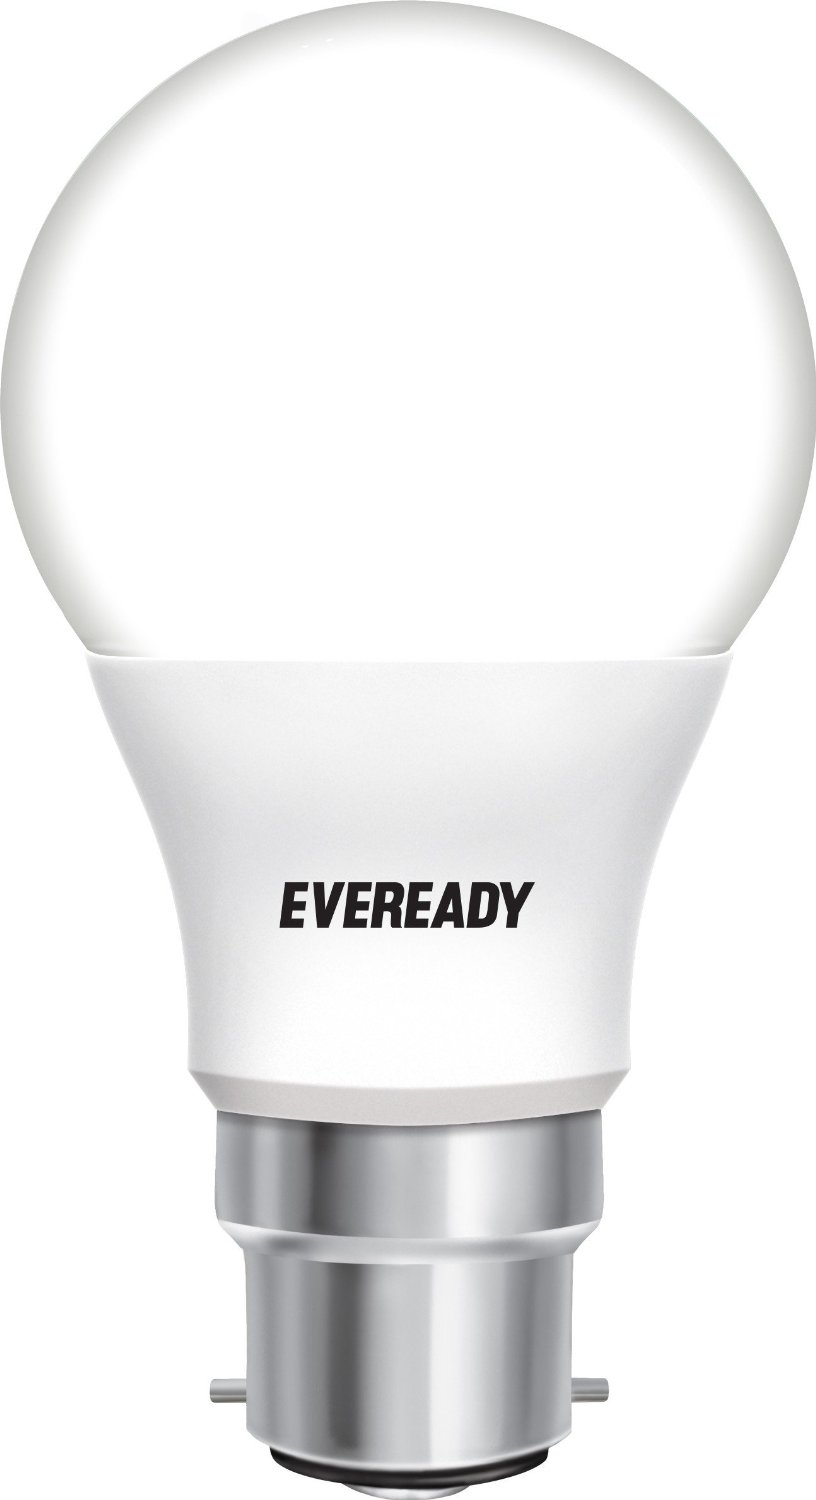 Eveready Led Bulbs Reviews And Ratings